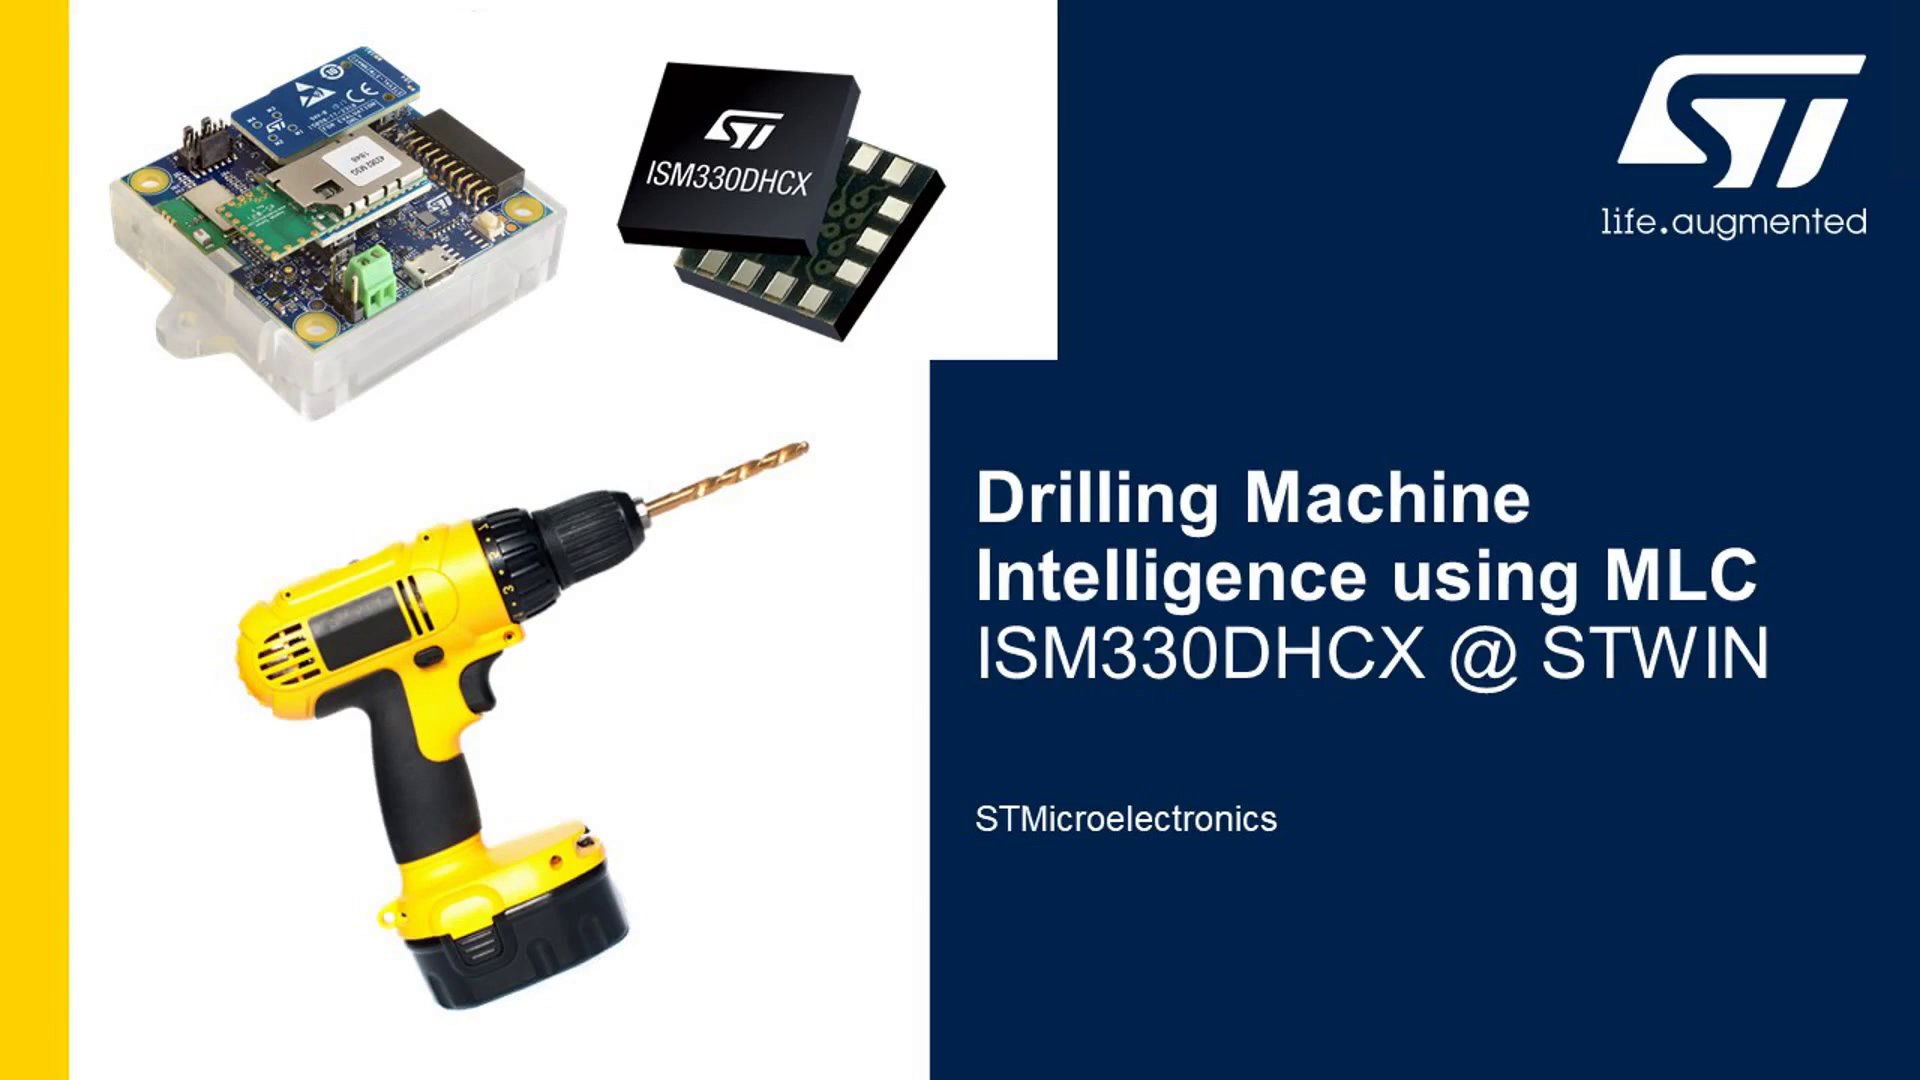 Video Drilling with MEMS sensors and deep edge AI